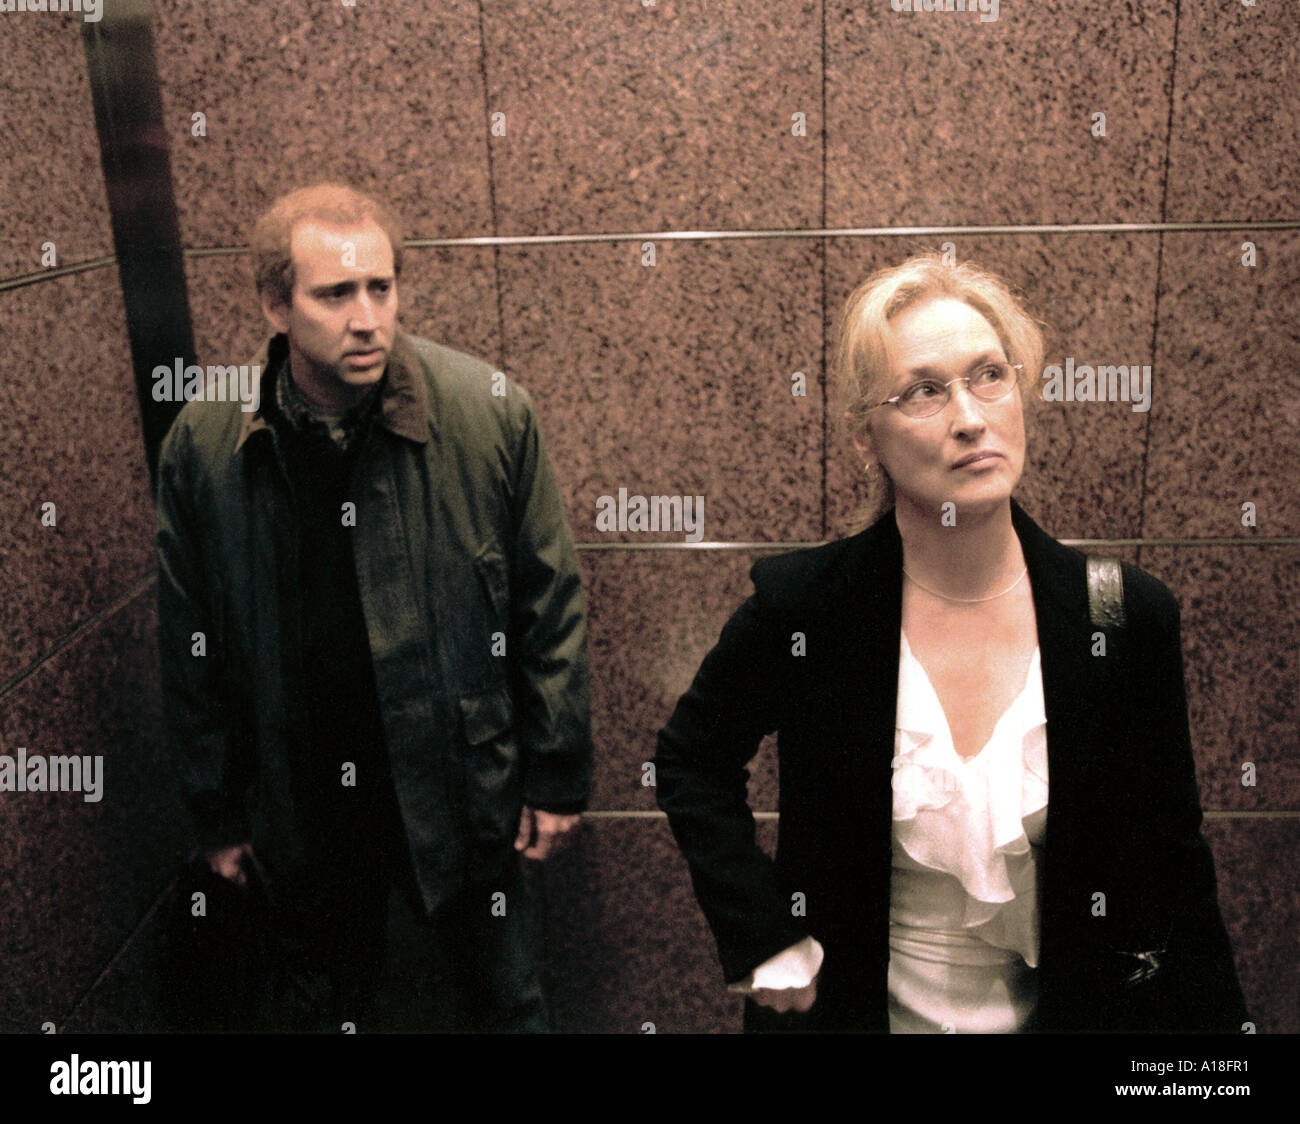 ADAPTION - Nicholas Cage and Meryl Streep - Stock Image